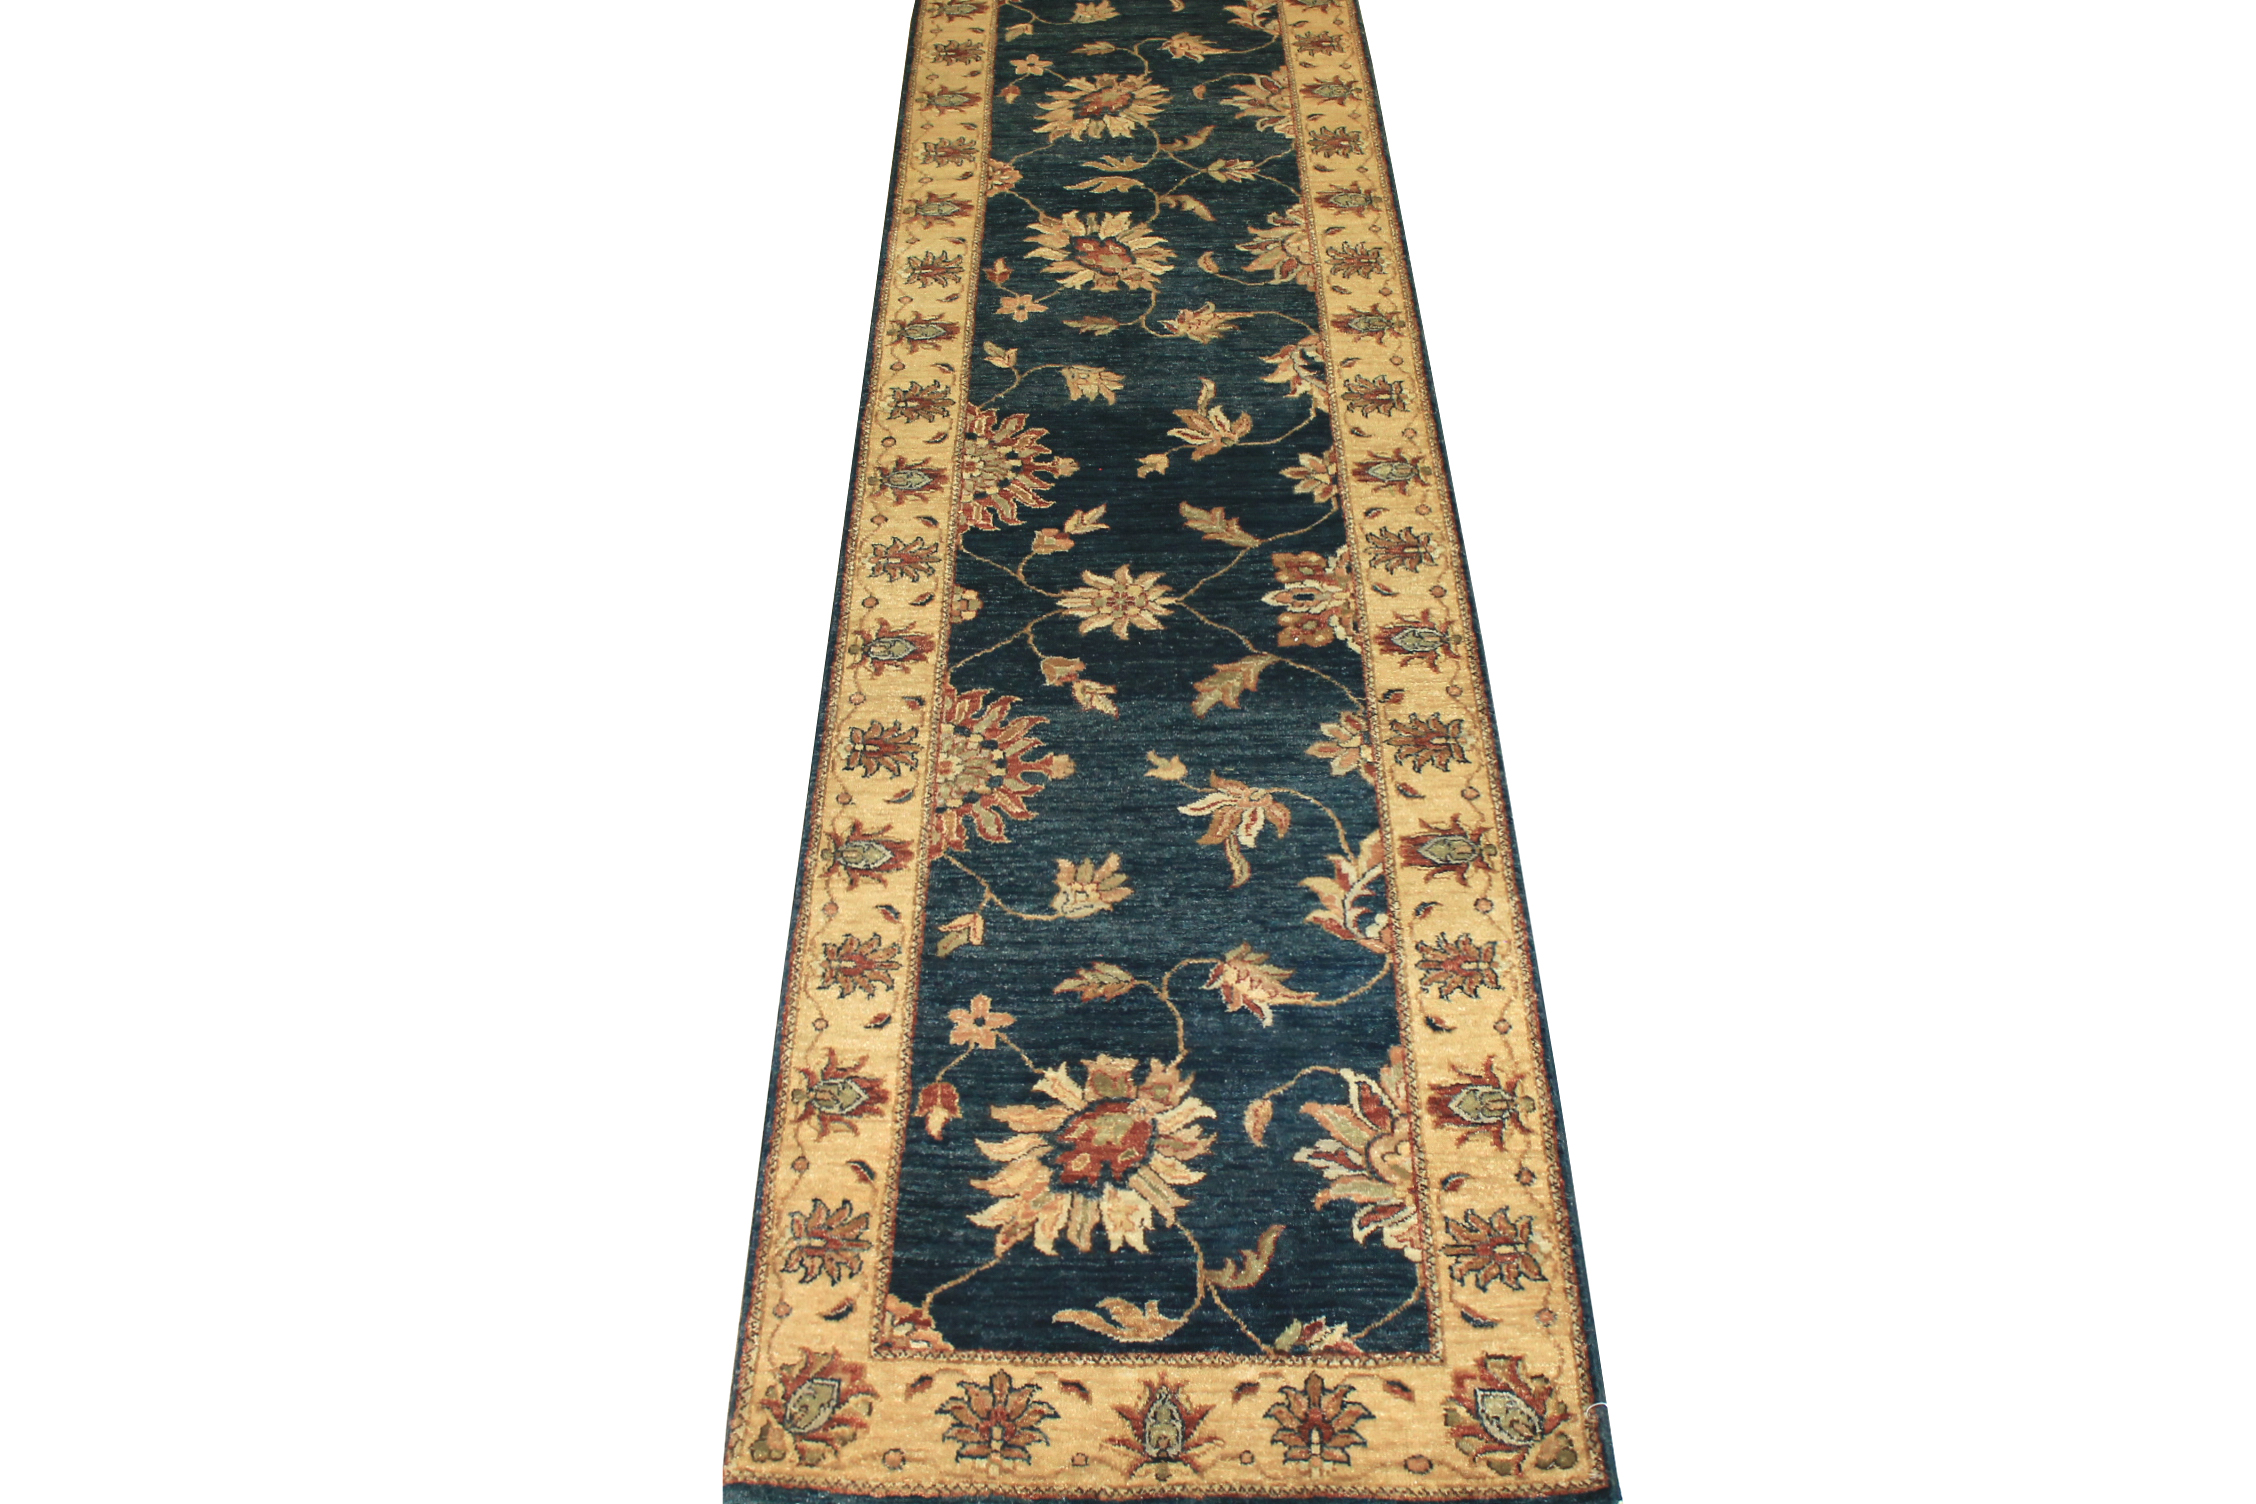 13 ft. & Longer Runner Traditional Hand Knotted Wool Area Rug - MR5557